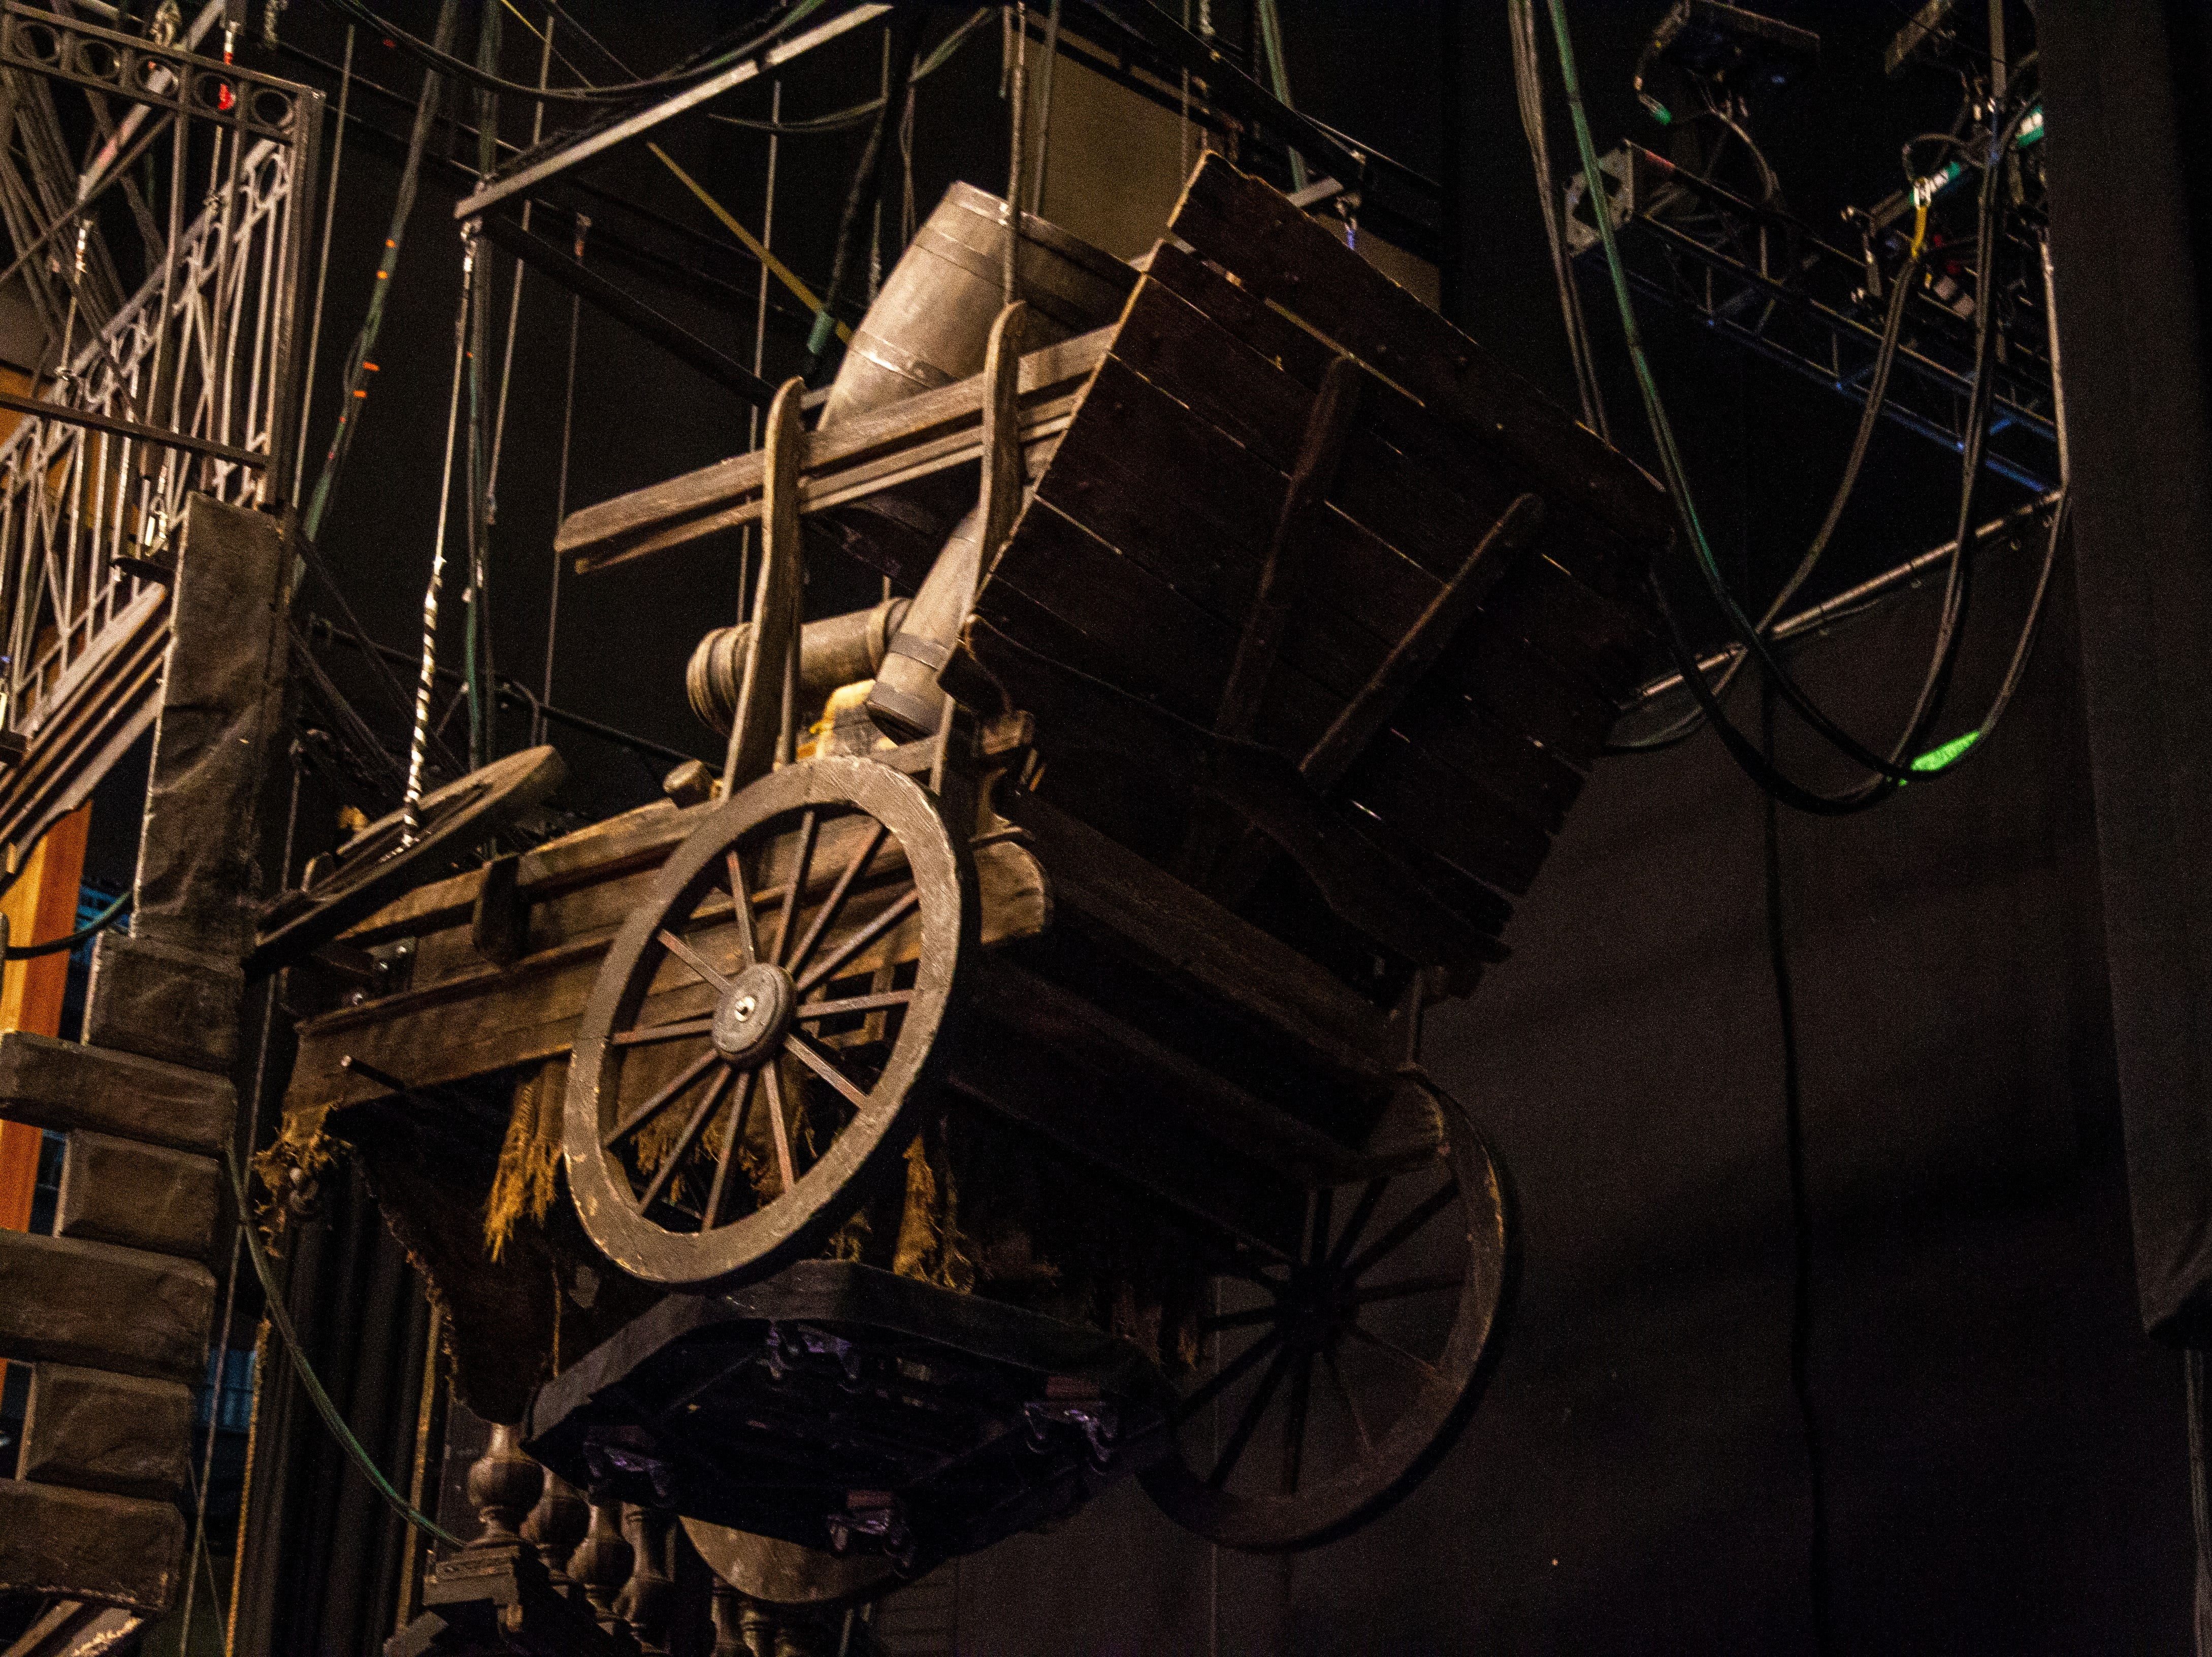 A set piece hangs backstage at Les Misérables as set up continues before its opening show on Tuesday, Dec. 4, 2018, at Hancher Auditorium on the University of Iowa campus in Iowa City.